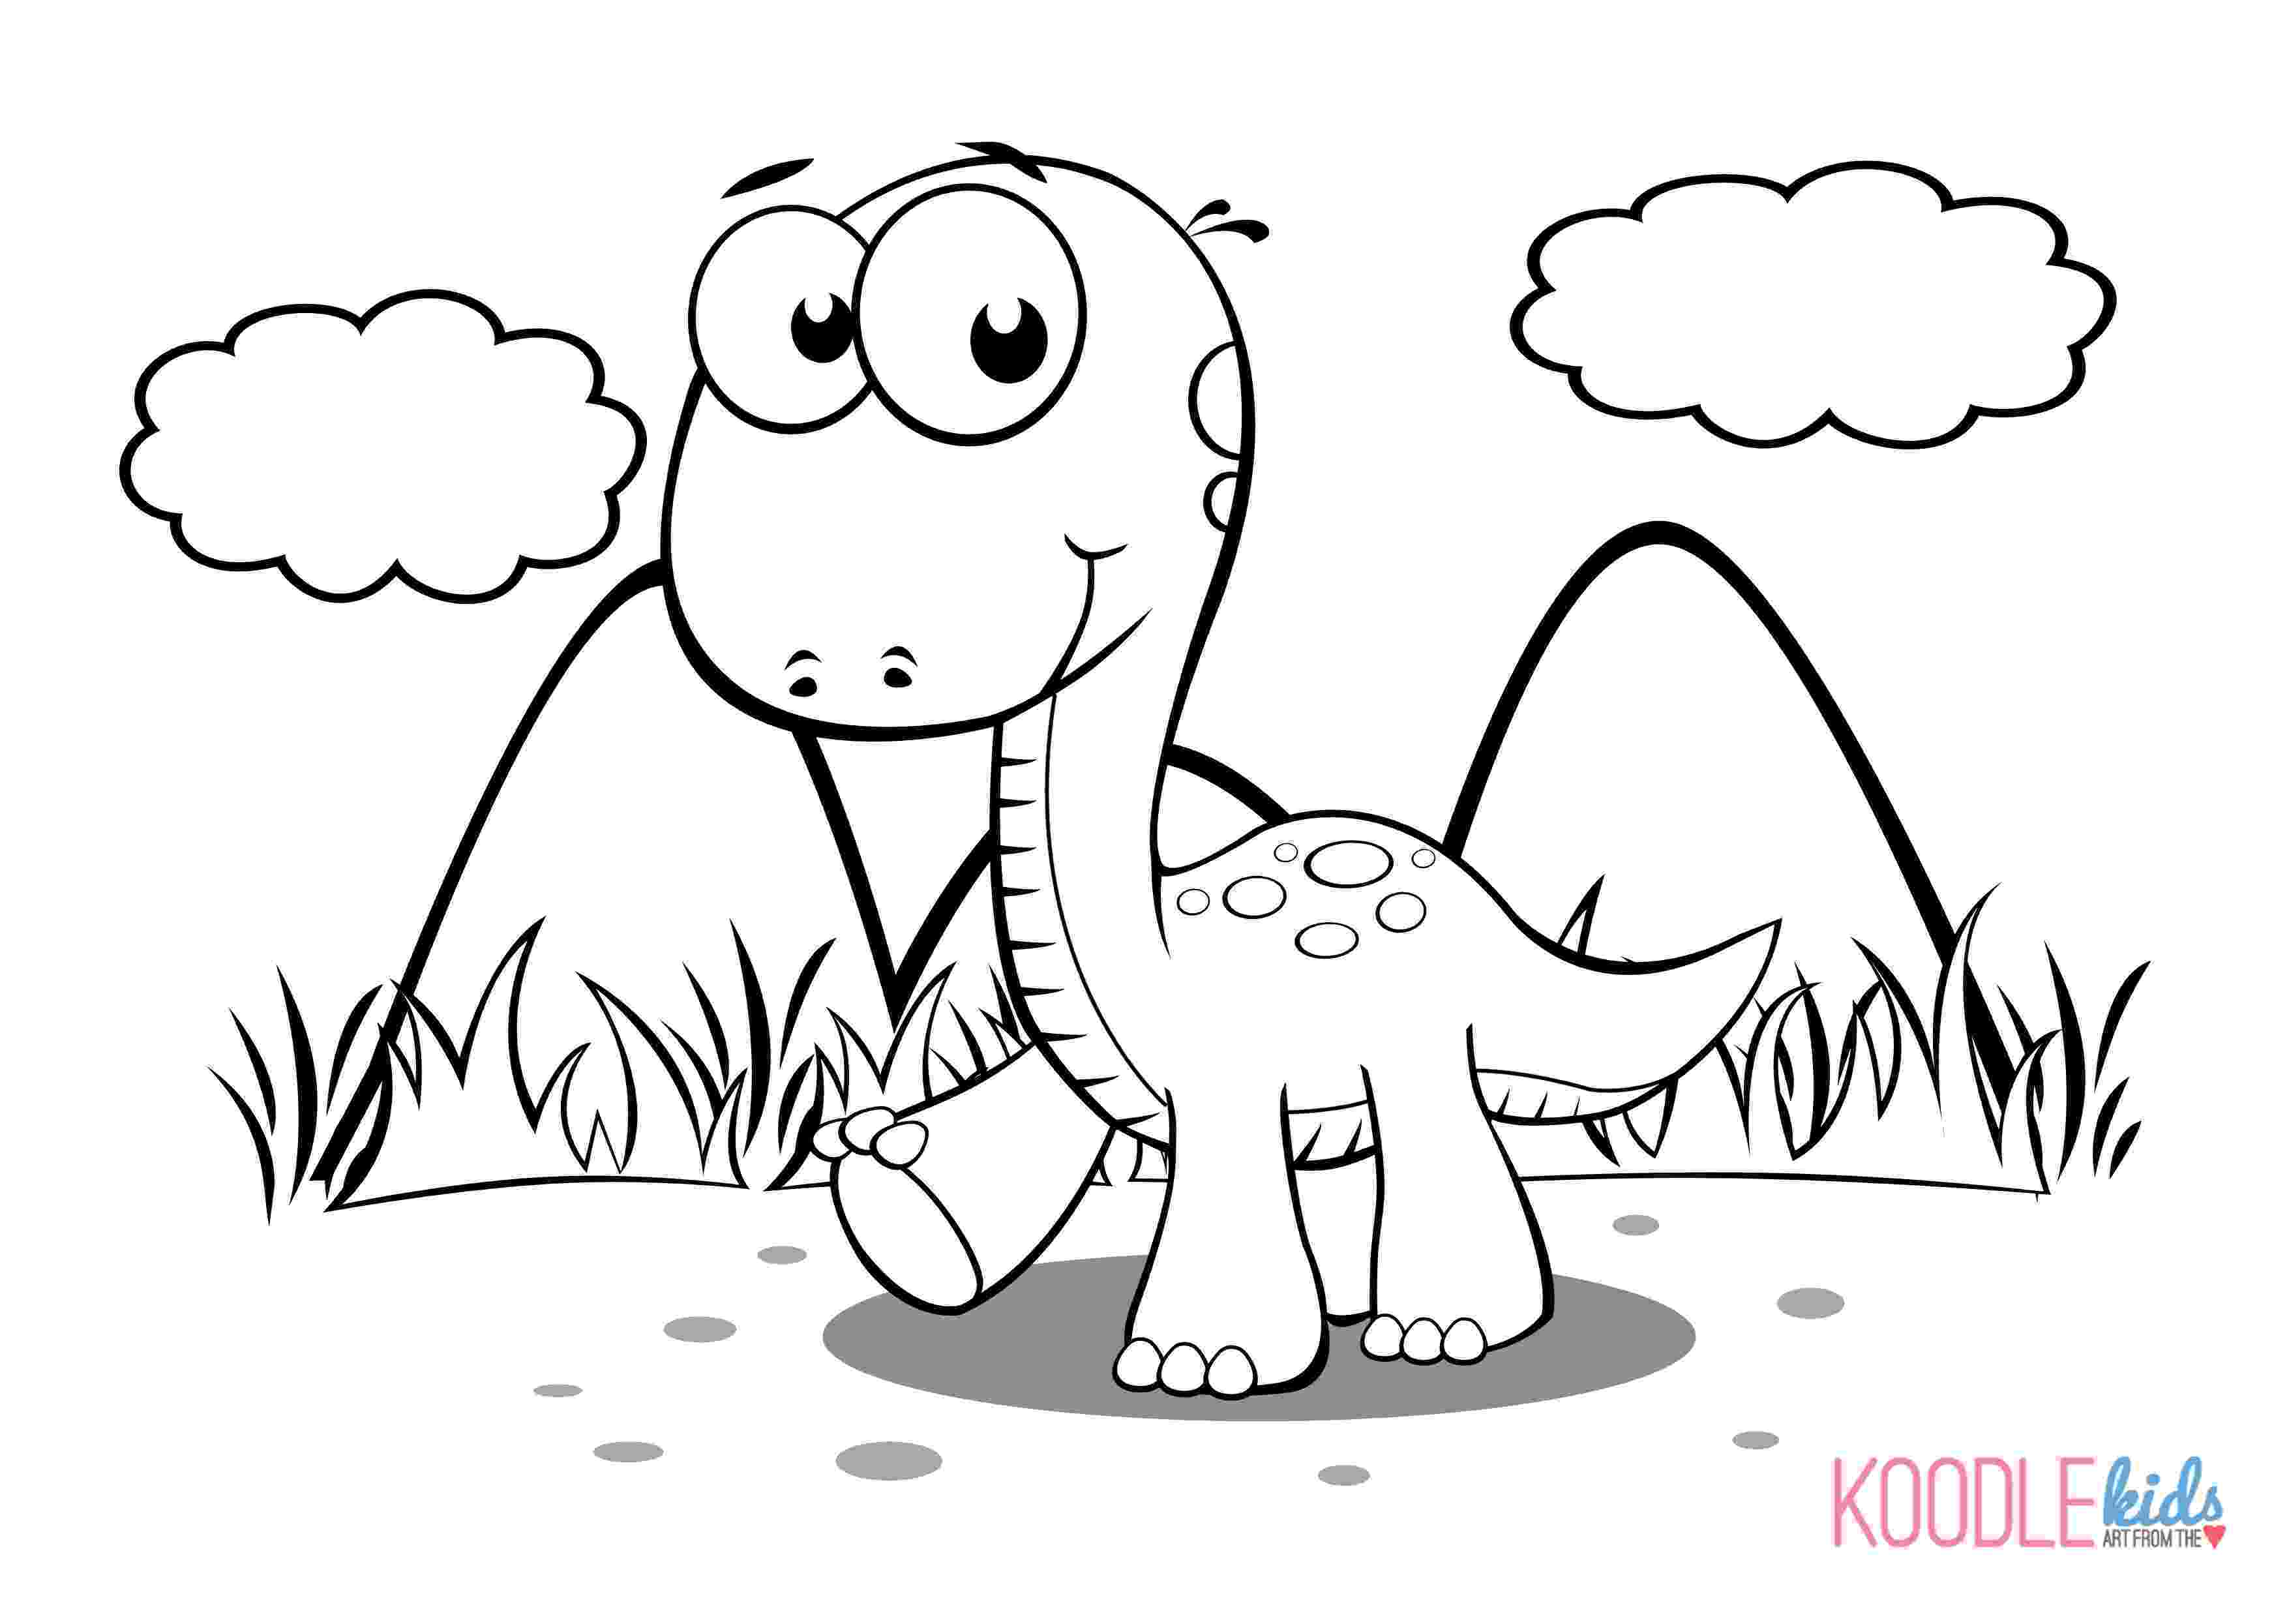 dinosaur colouring page cute little dinosaur coloring page free printable page dinosaur colouring